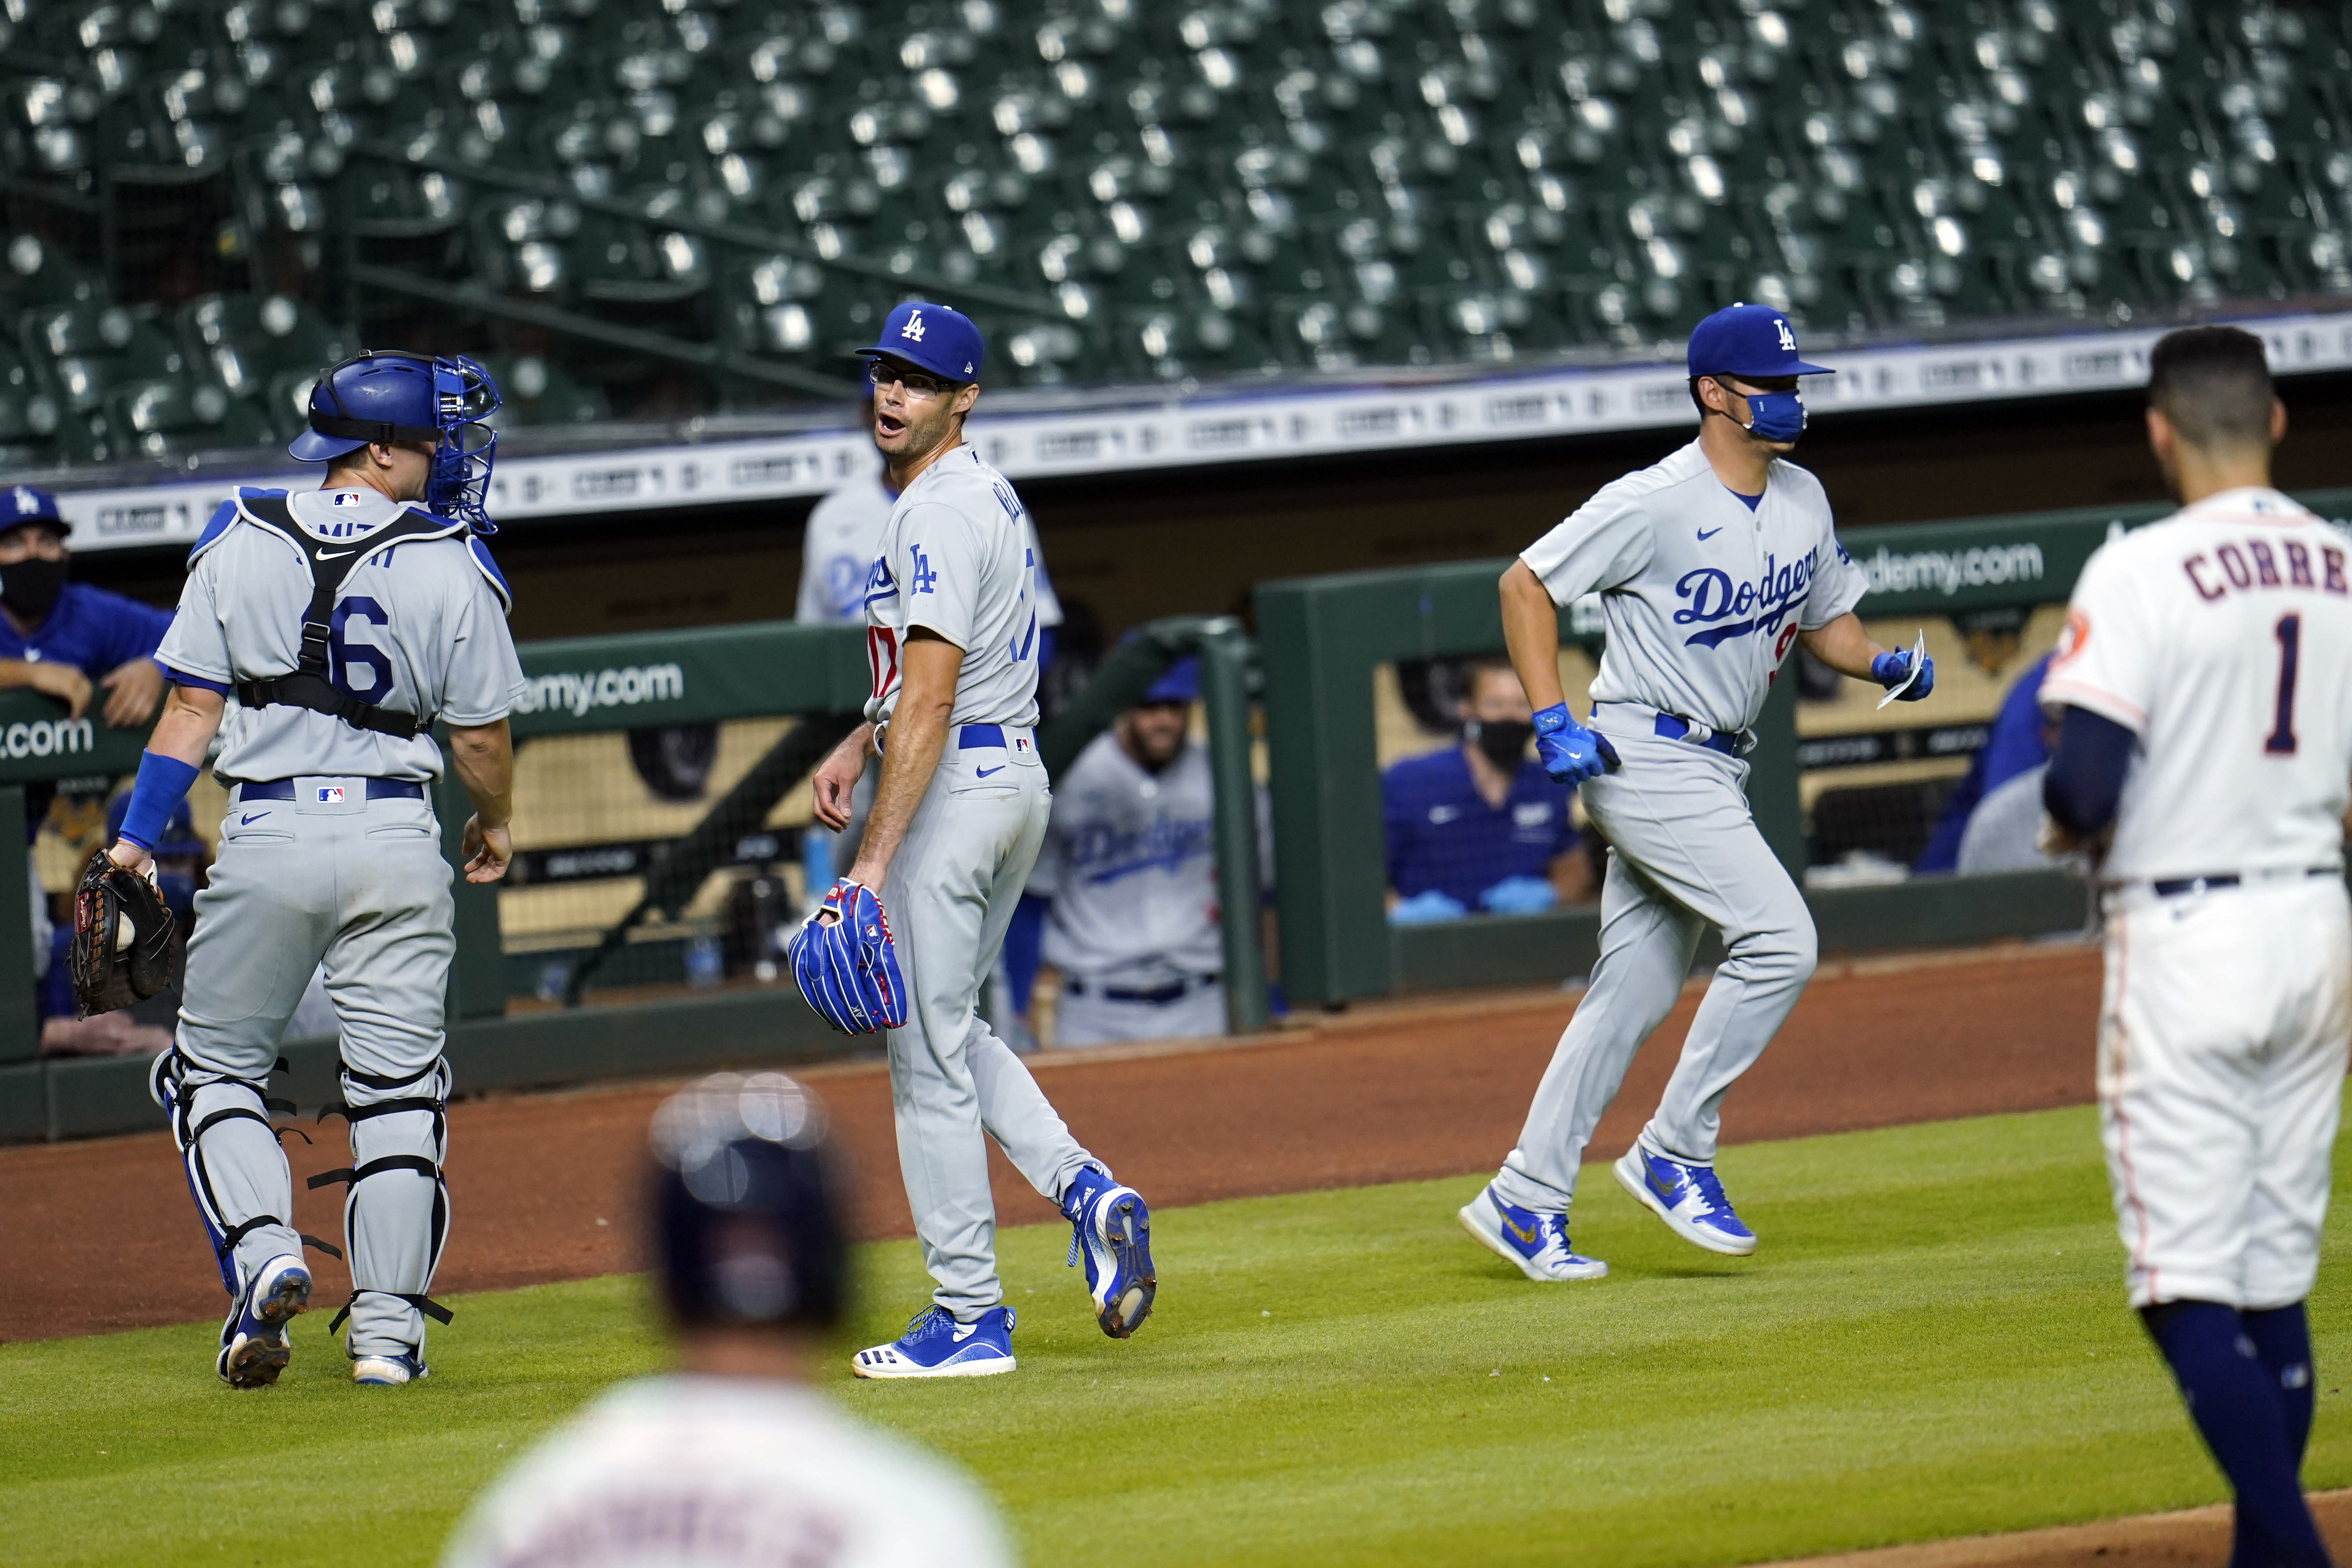 Los Angeles Dodgers relief pitcher Joe Kelly, second from left, talks back to Houston Astros' Carlos Correa (1) after the sixth inning of a baseball game Tuesday, July 28, 2020, in Houston. Both benches emptied onto the field during the exchange. (AP Photo/David J. Phillip)